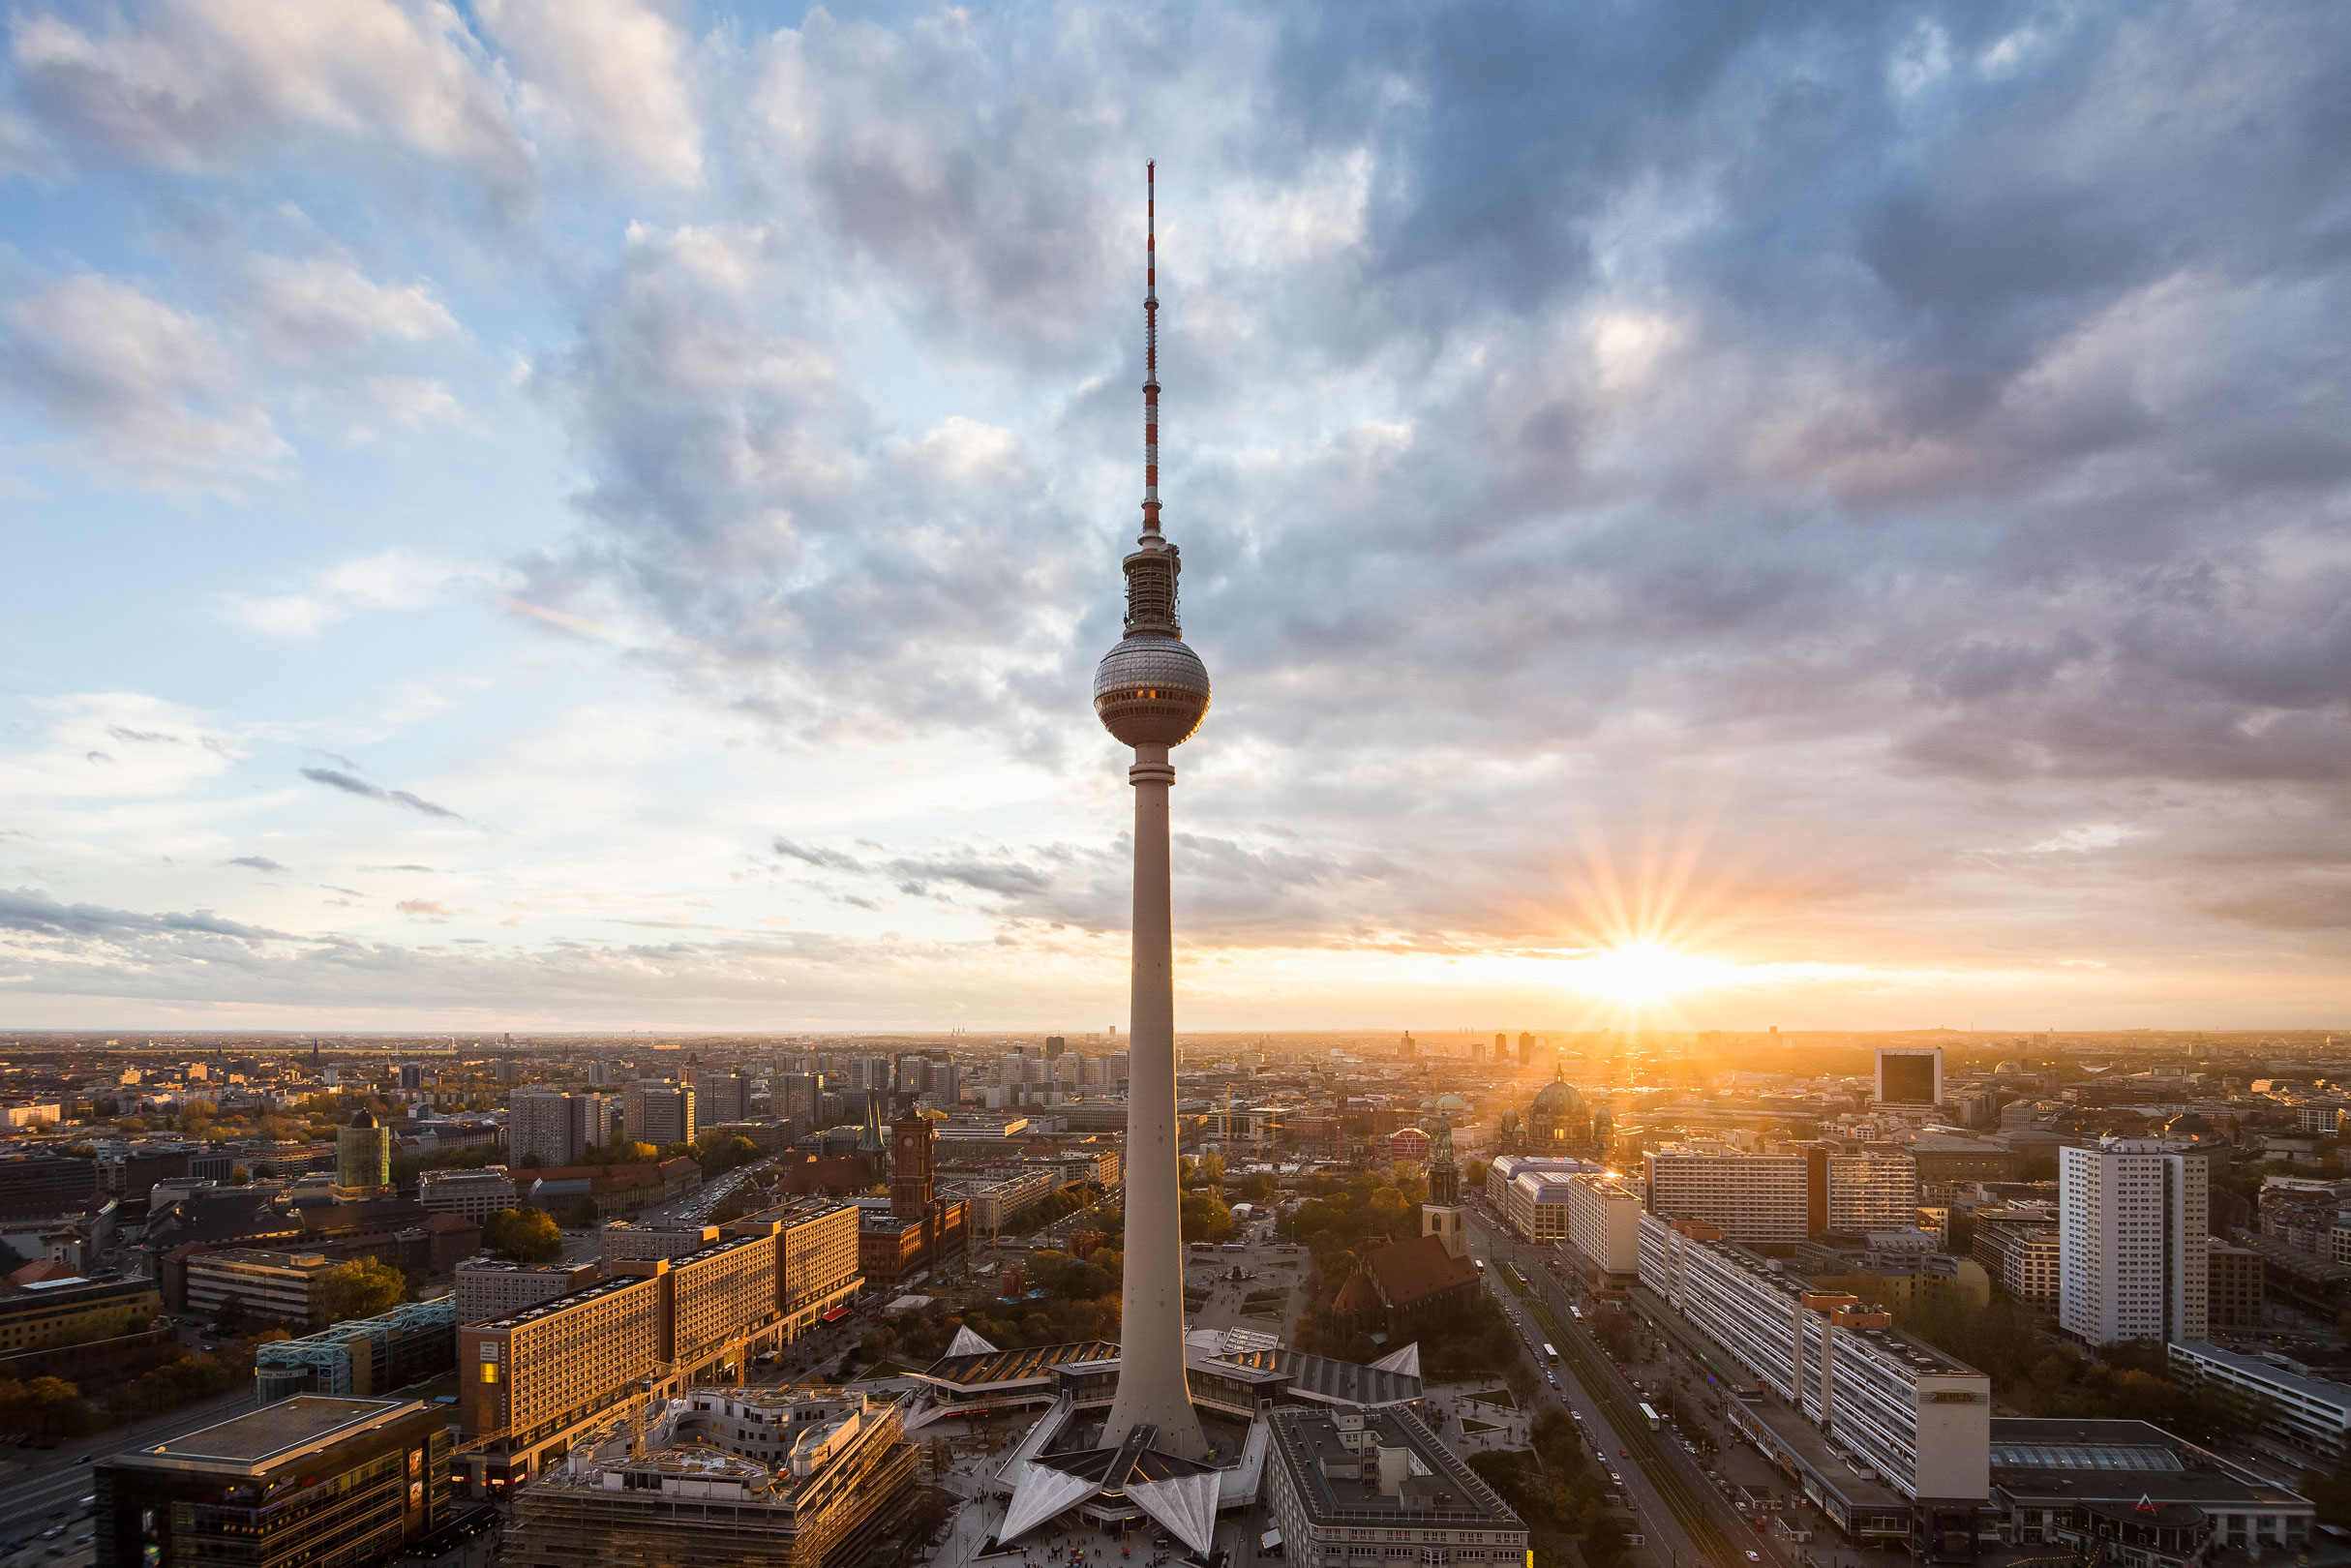 Panoramic view of Berlin at sunset.